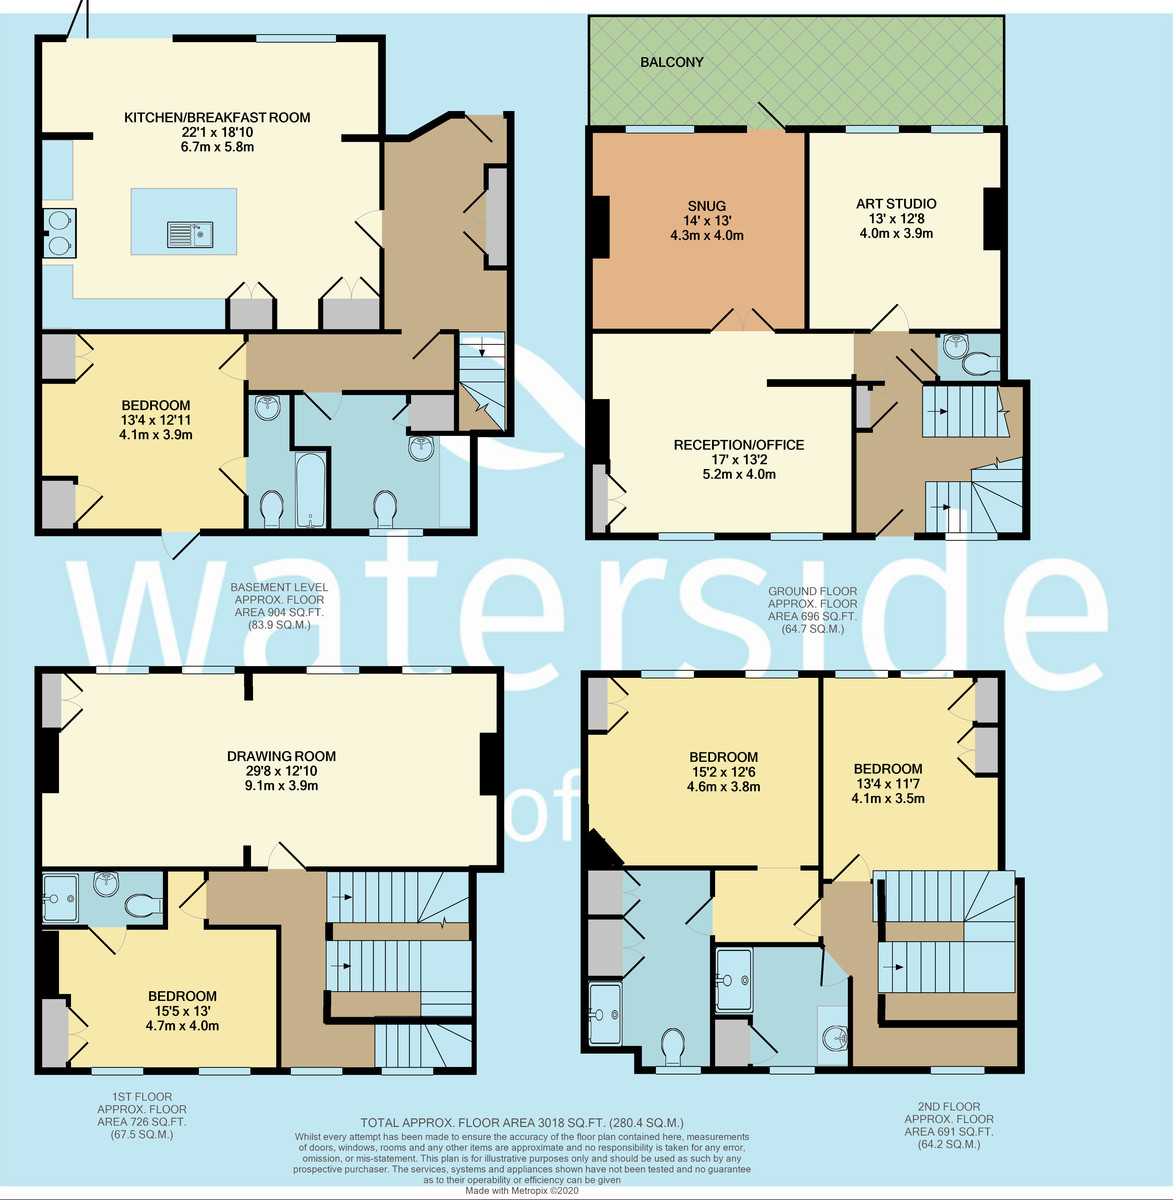 Cowes, Isle Of Wight floorplan